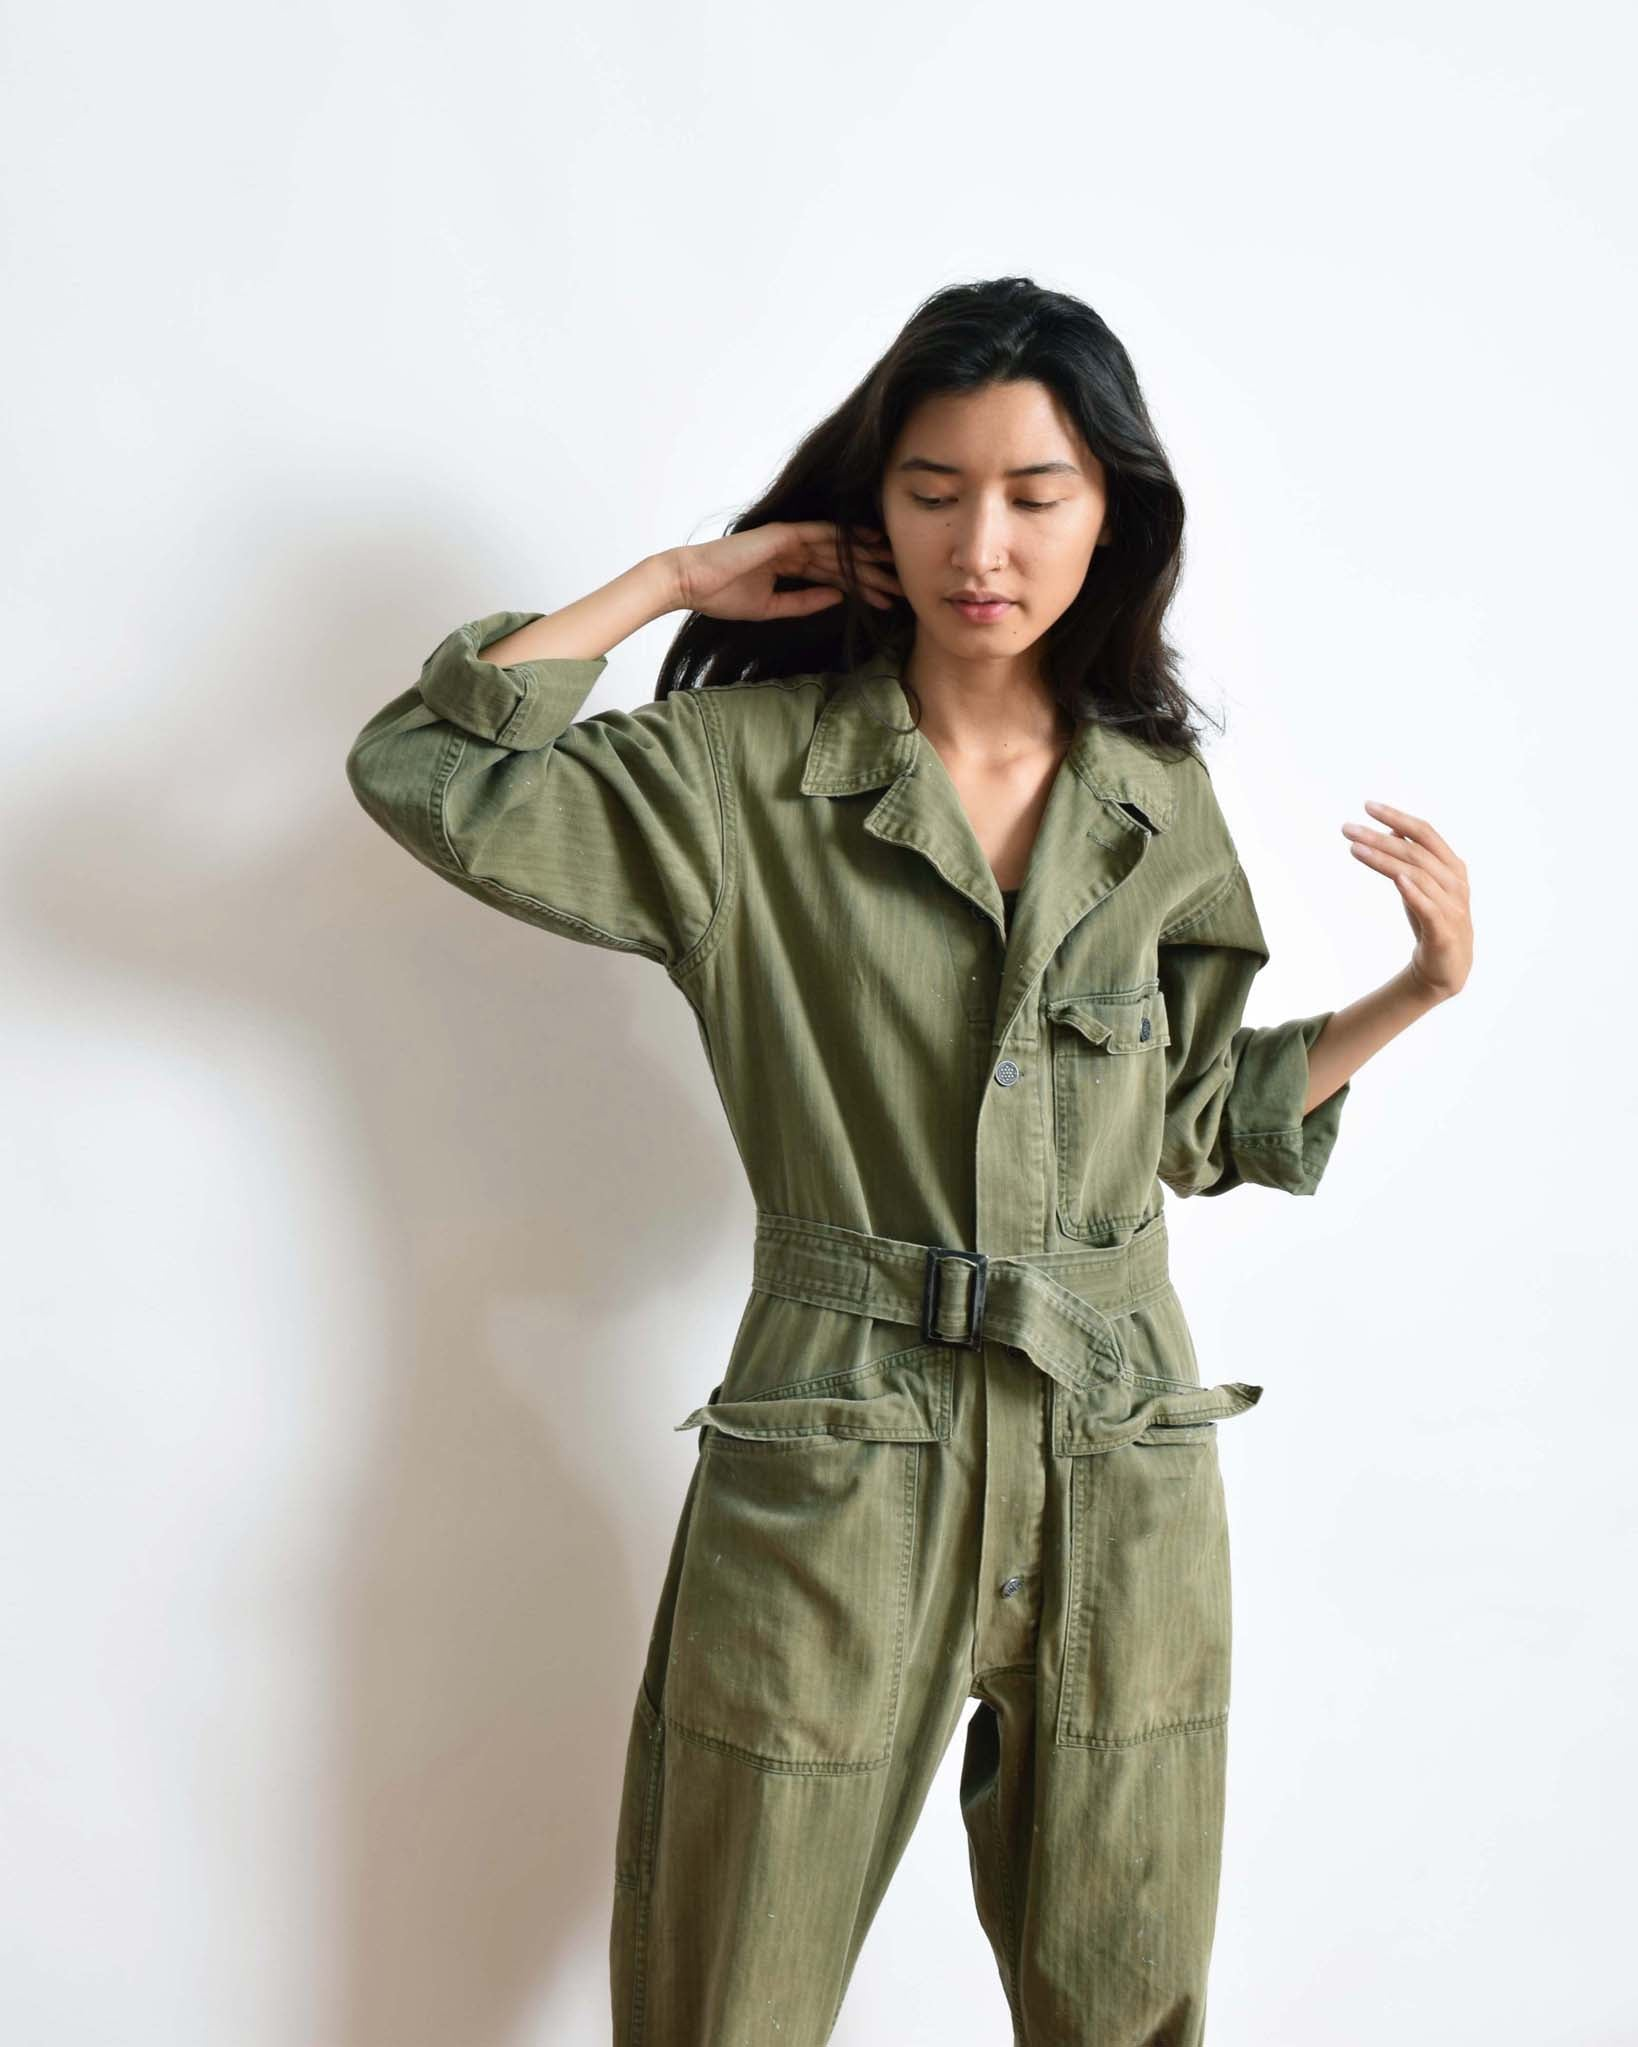 Vintage 1950s Army Flight Suit